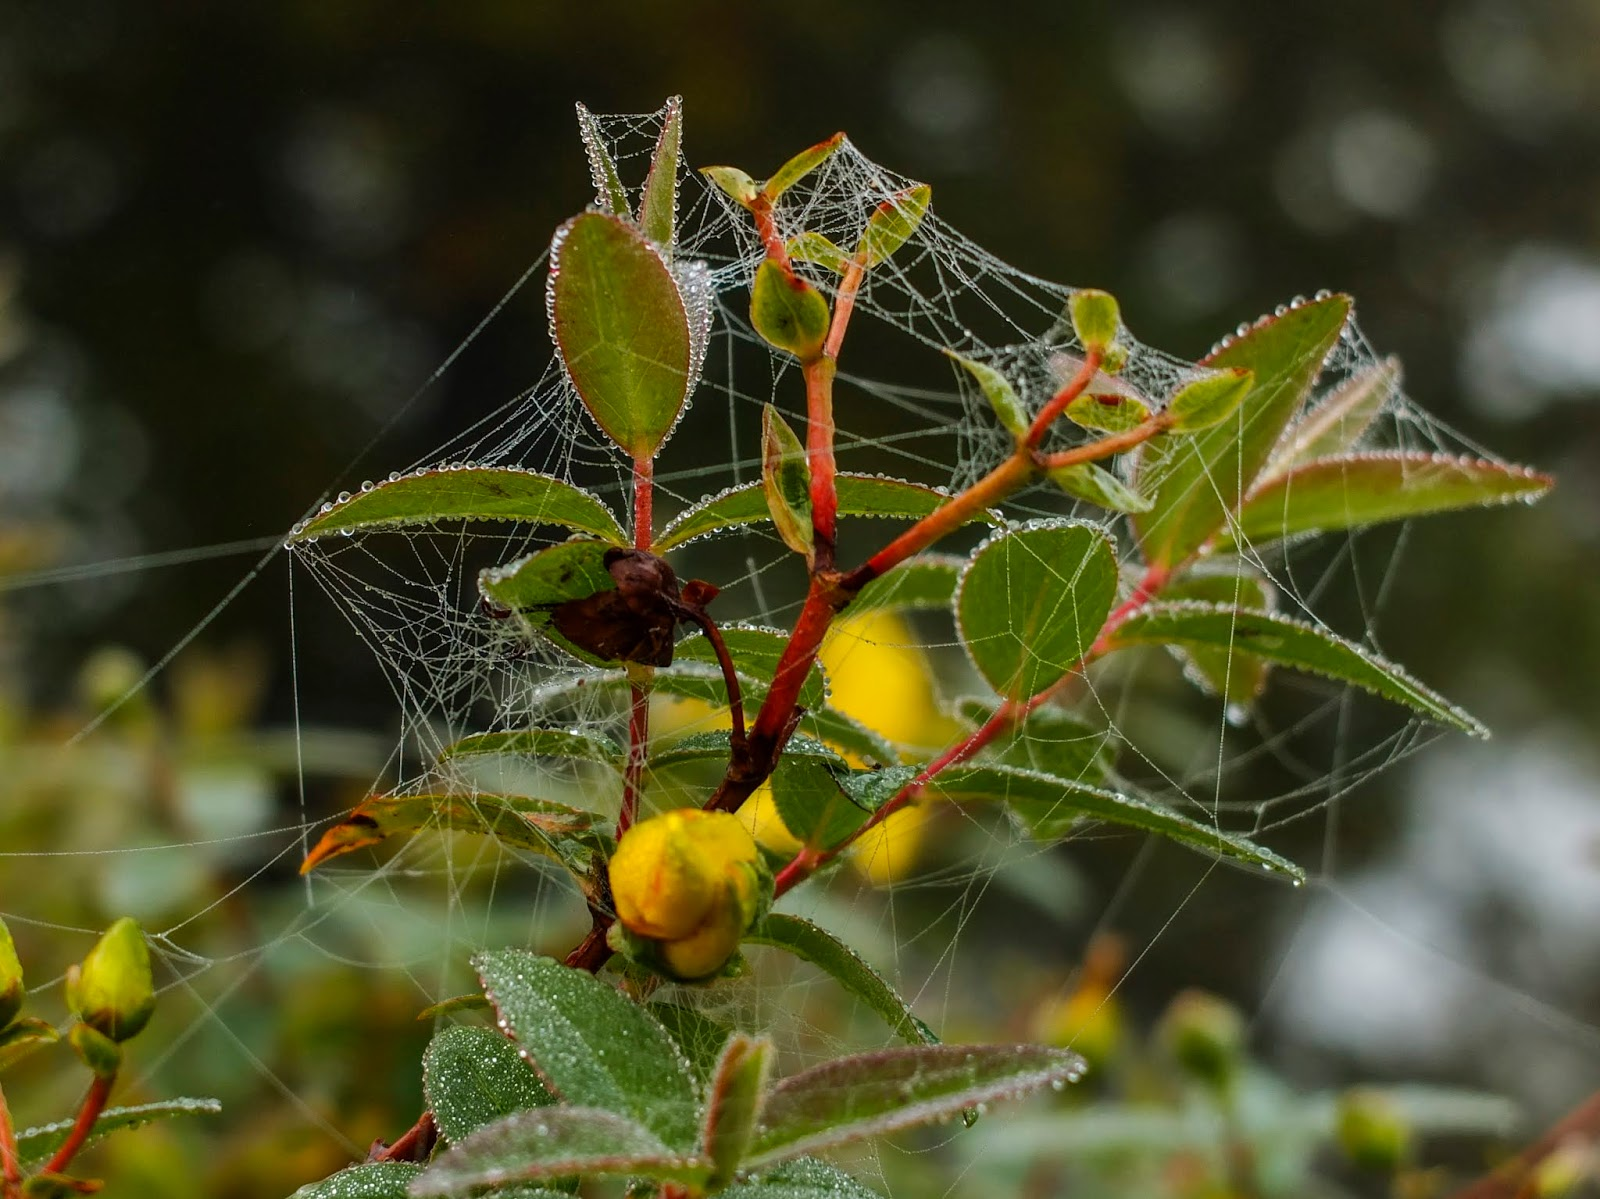 Leaves covered in spider web silk.